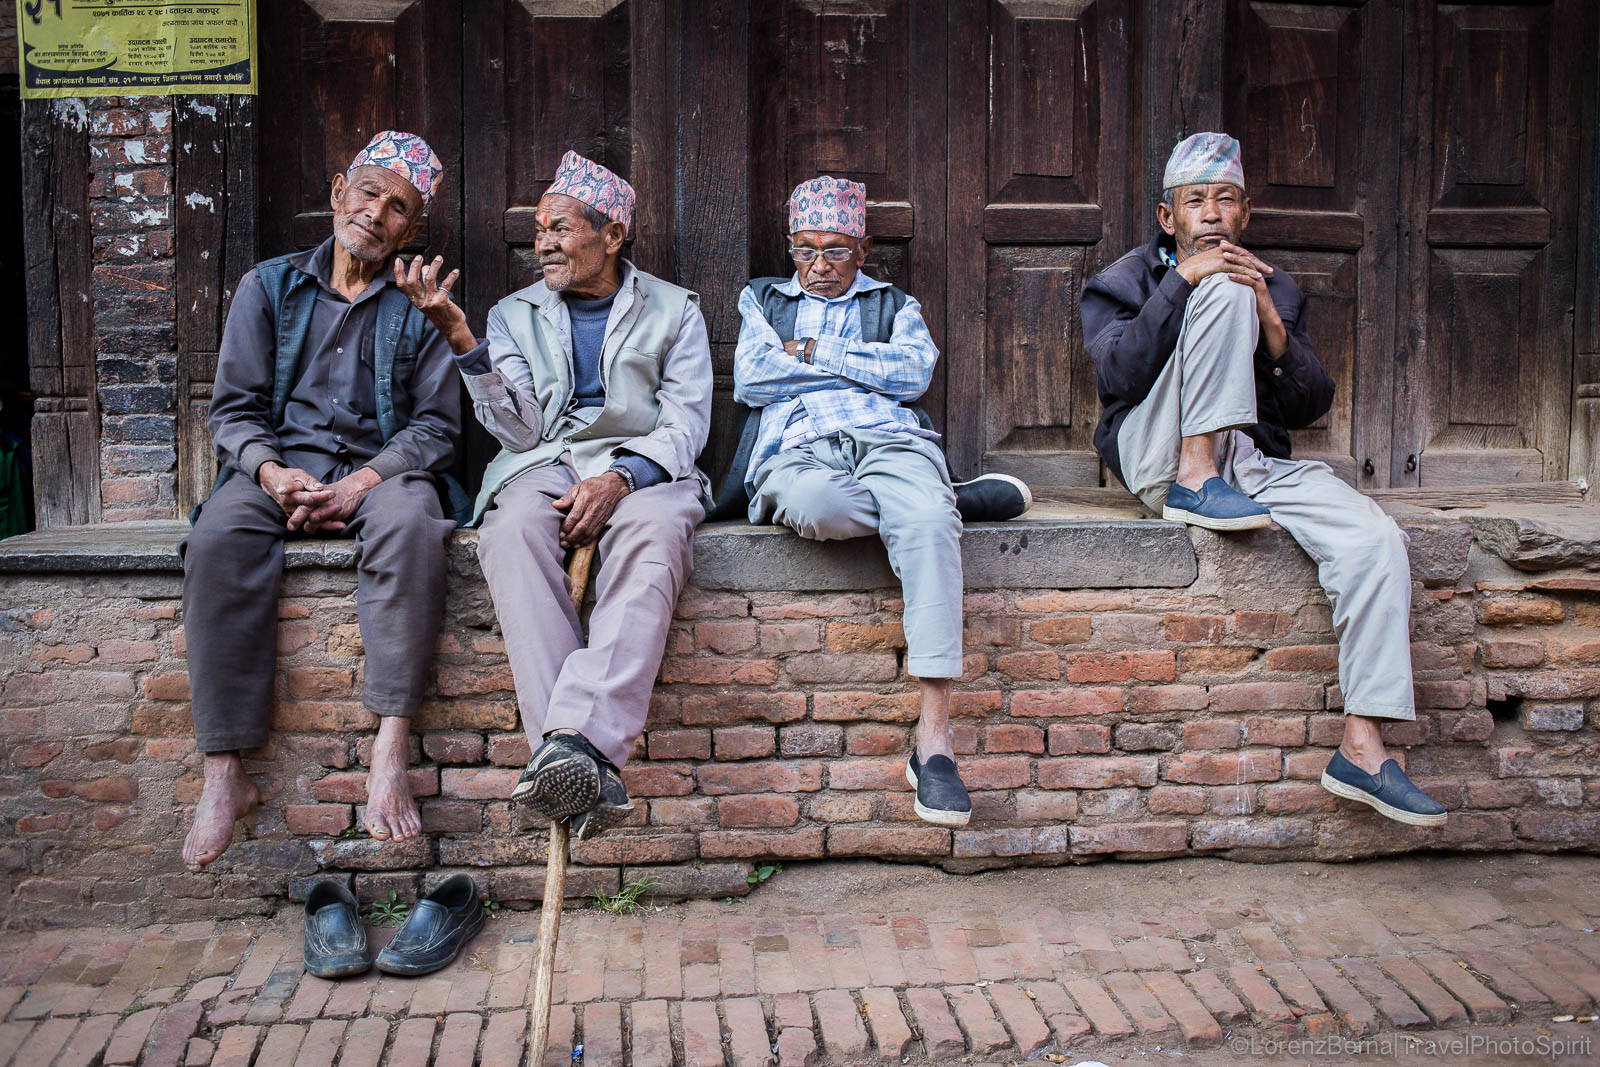 Old friends chatting on a covered brick platform in Bhaktapur, Nepal.